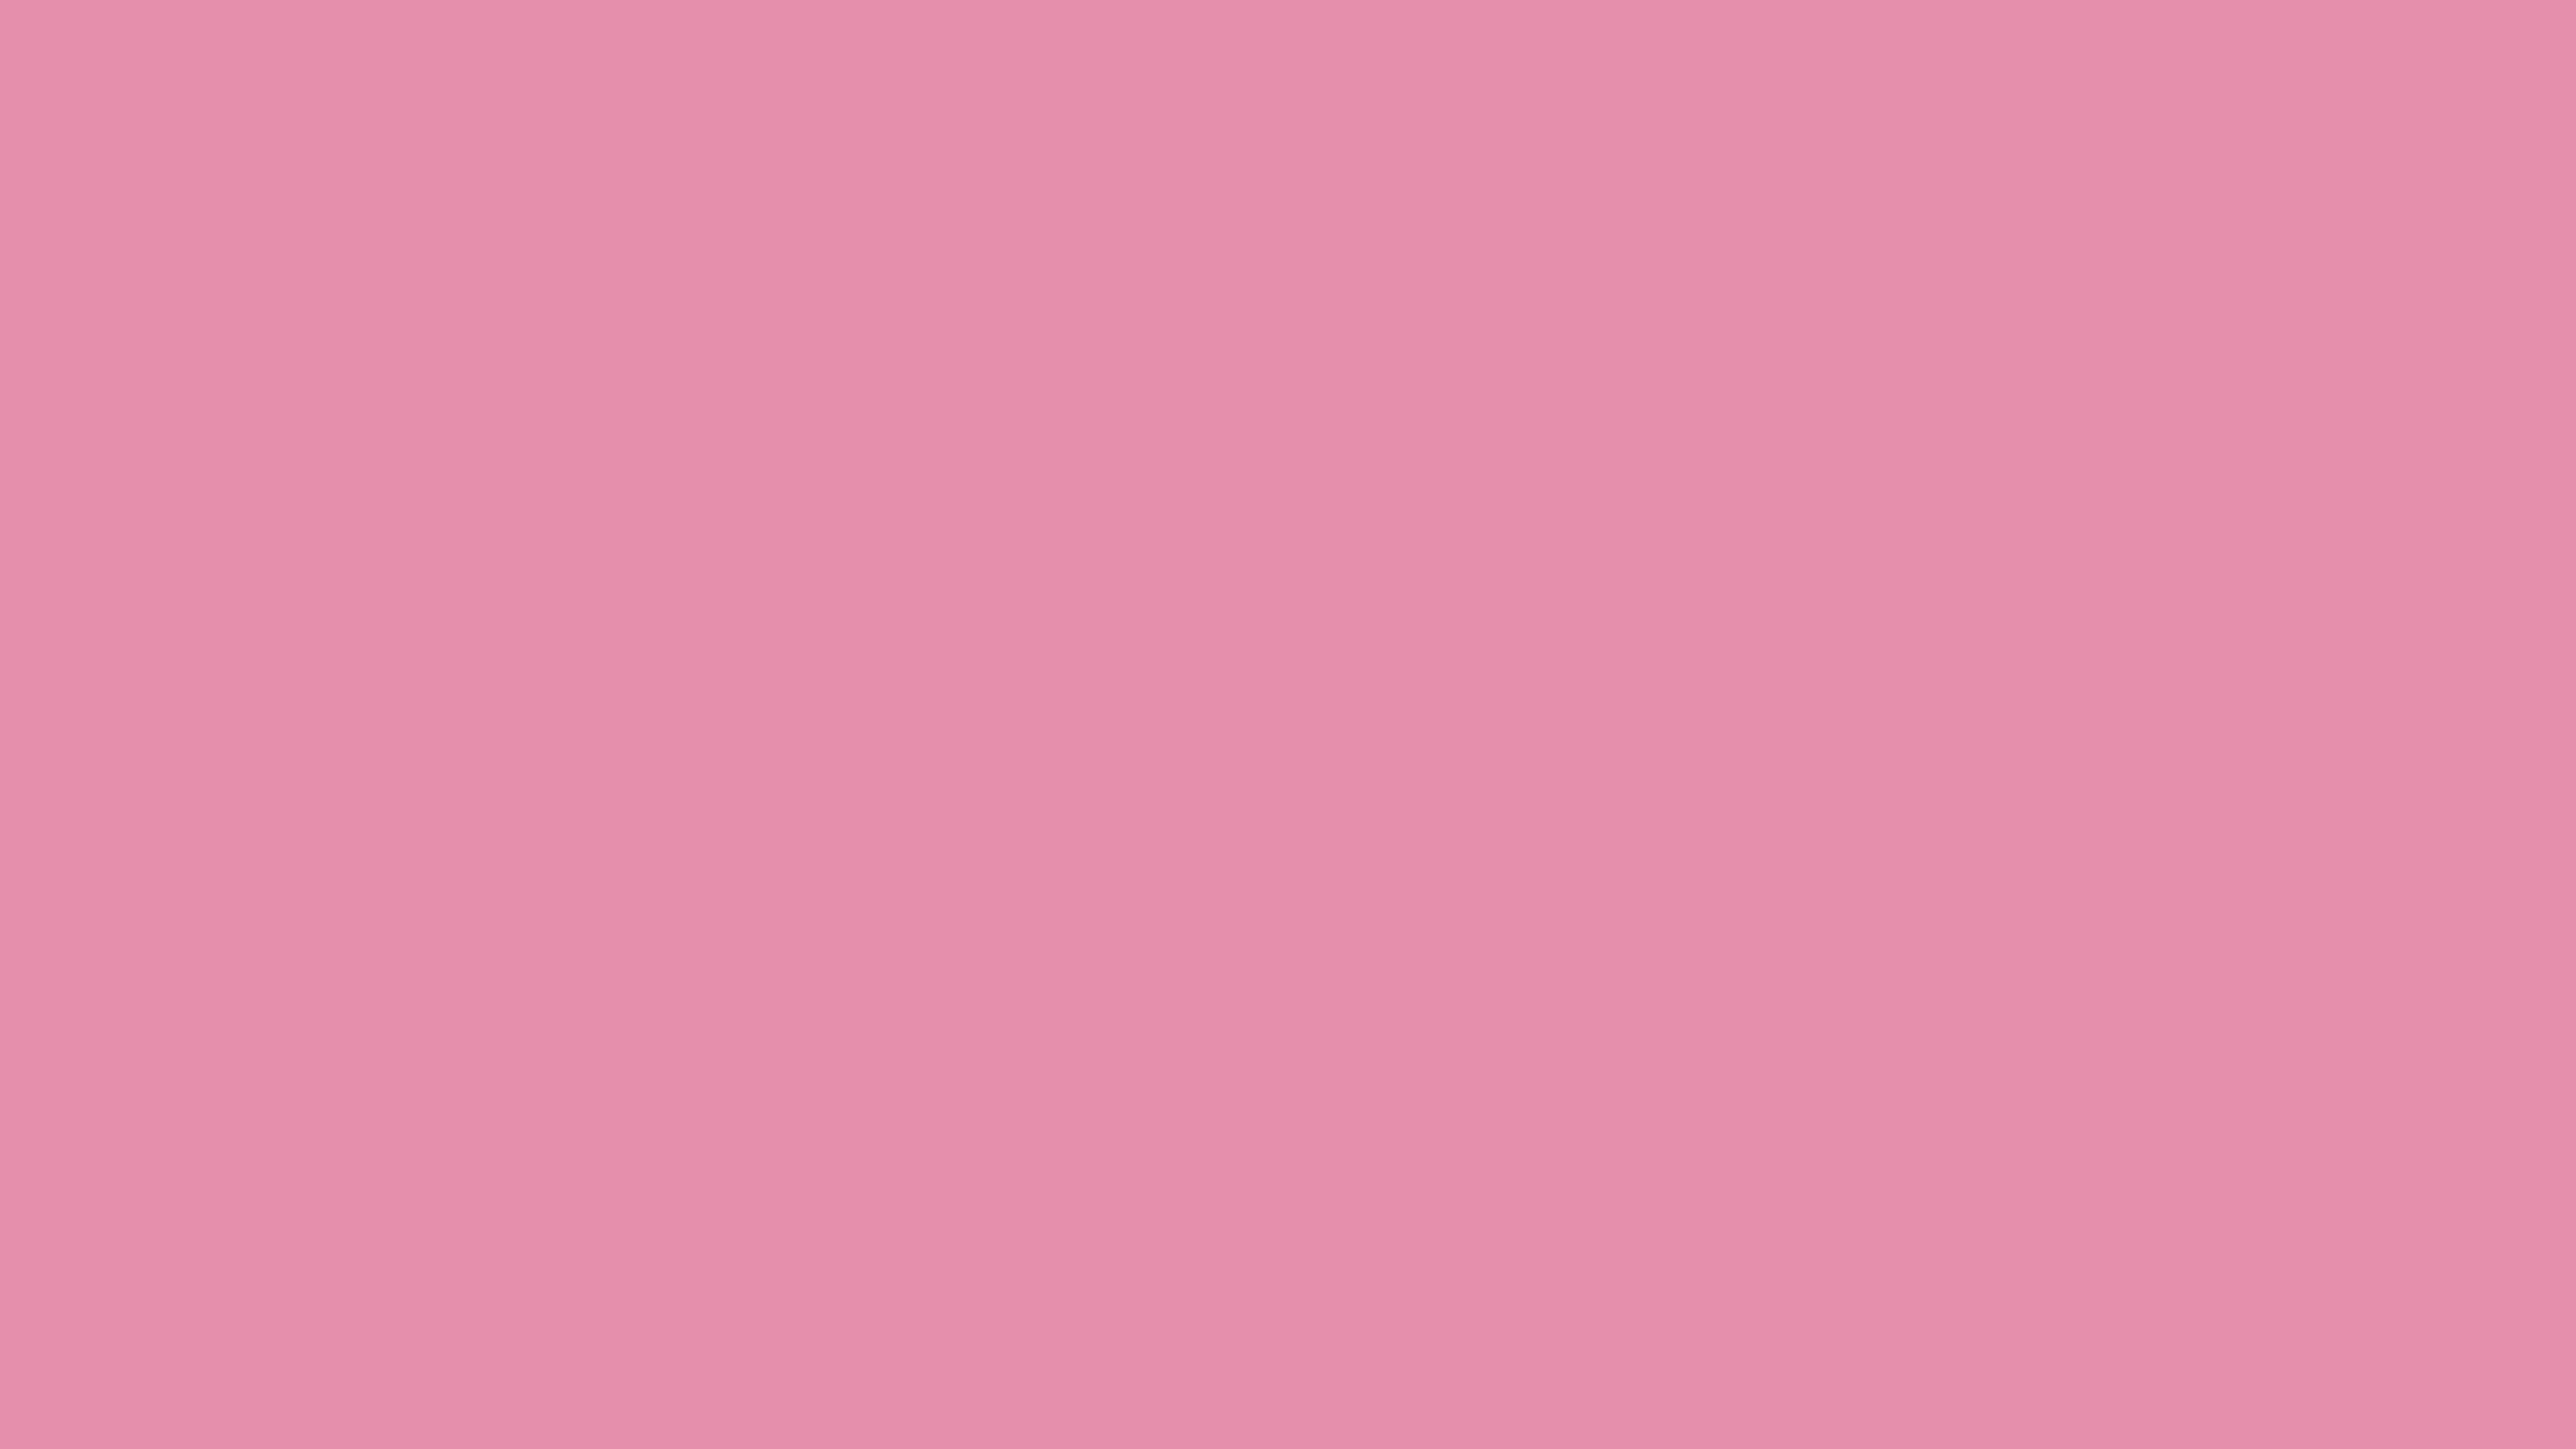 7680x4320 Light Thulian Pink Solid Color Background